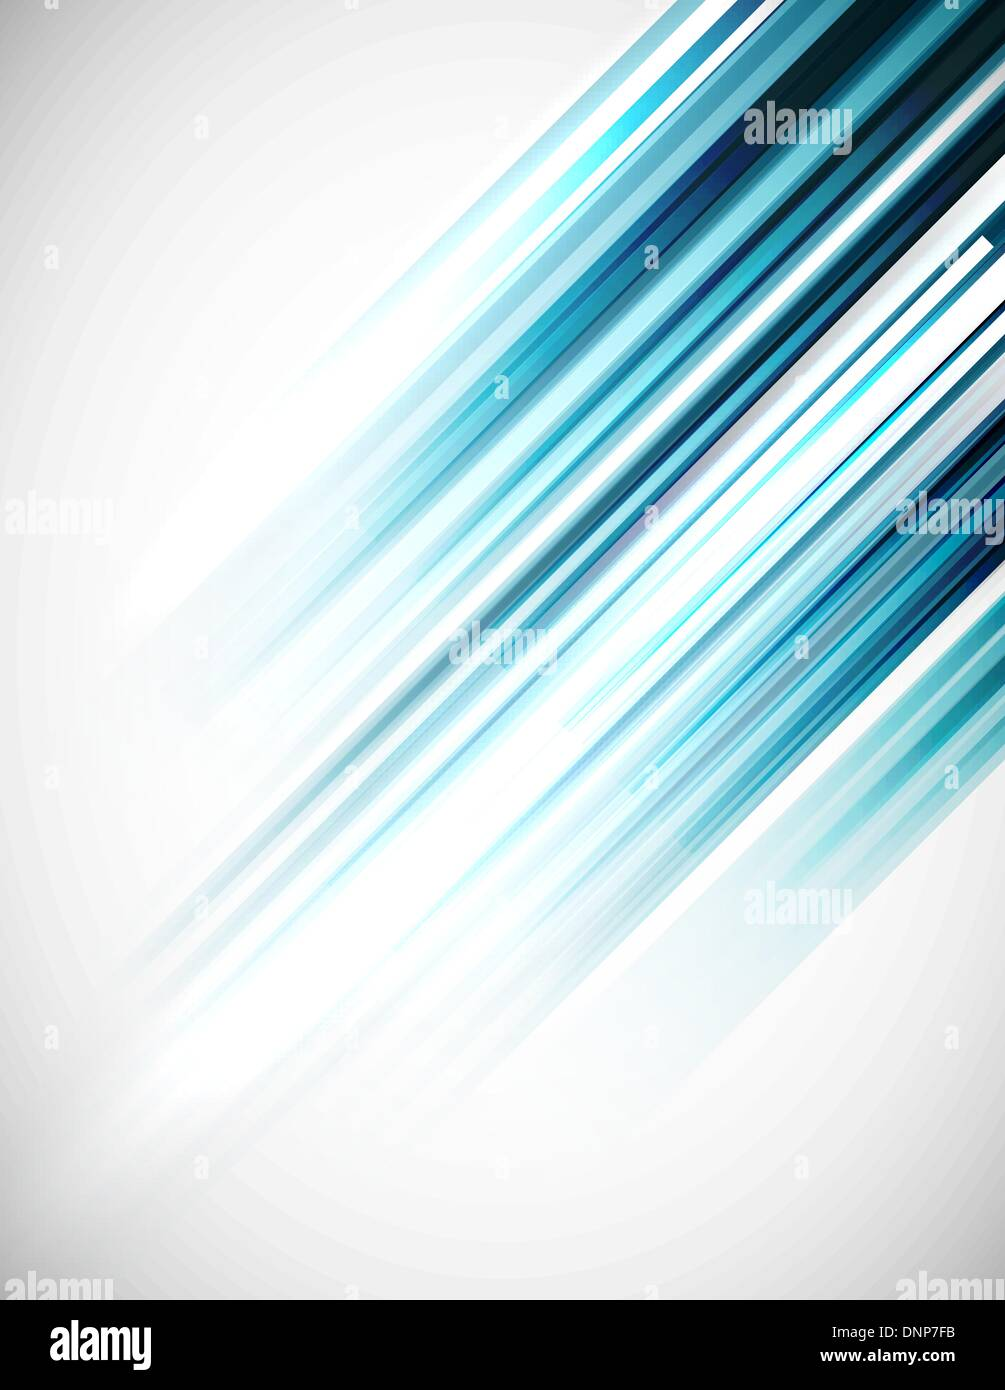 Blue abstract background vector lignes droites Photo Stock